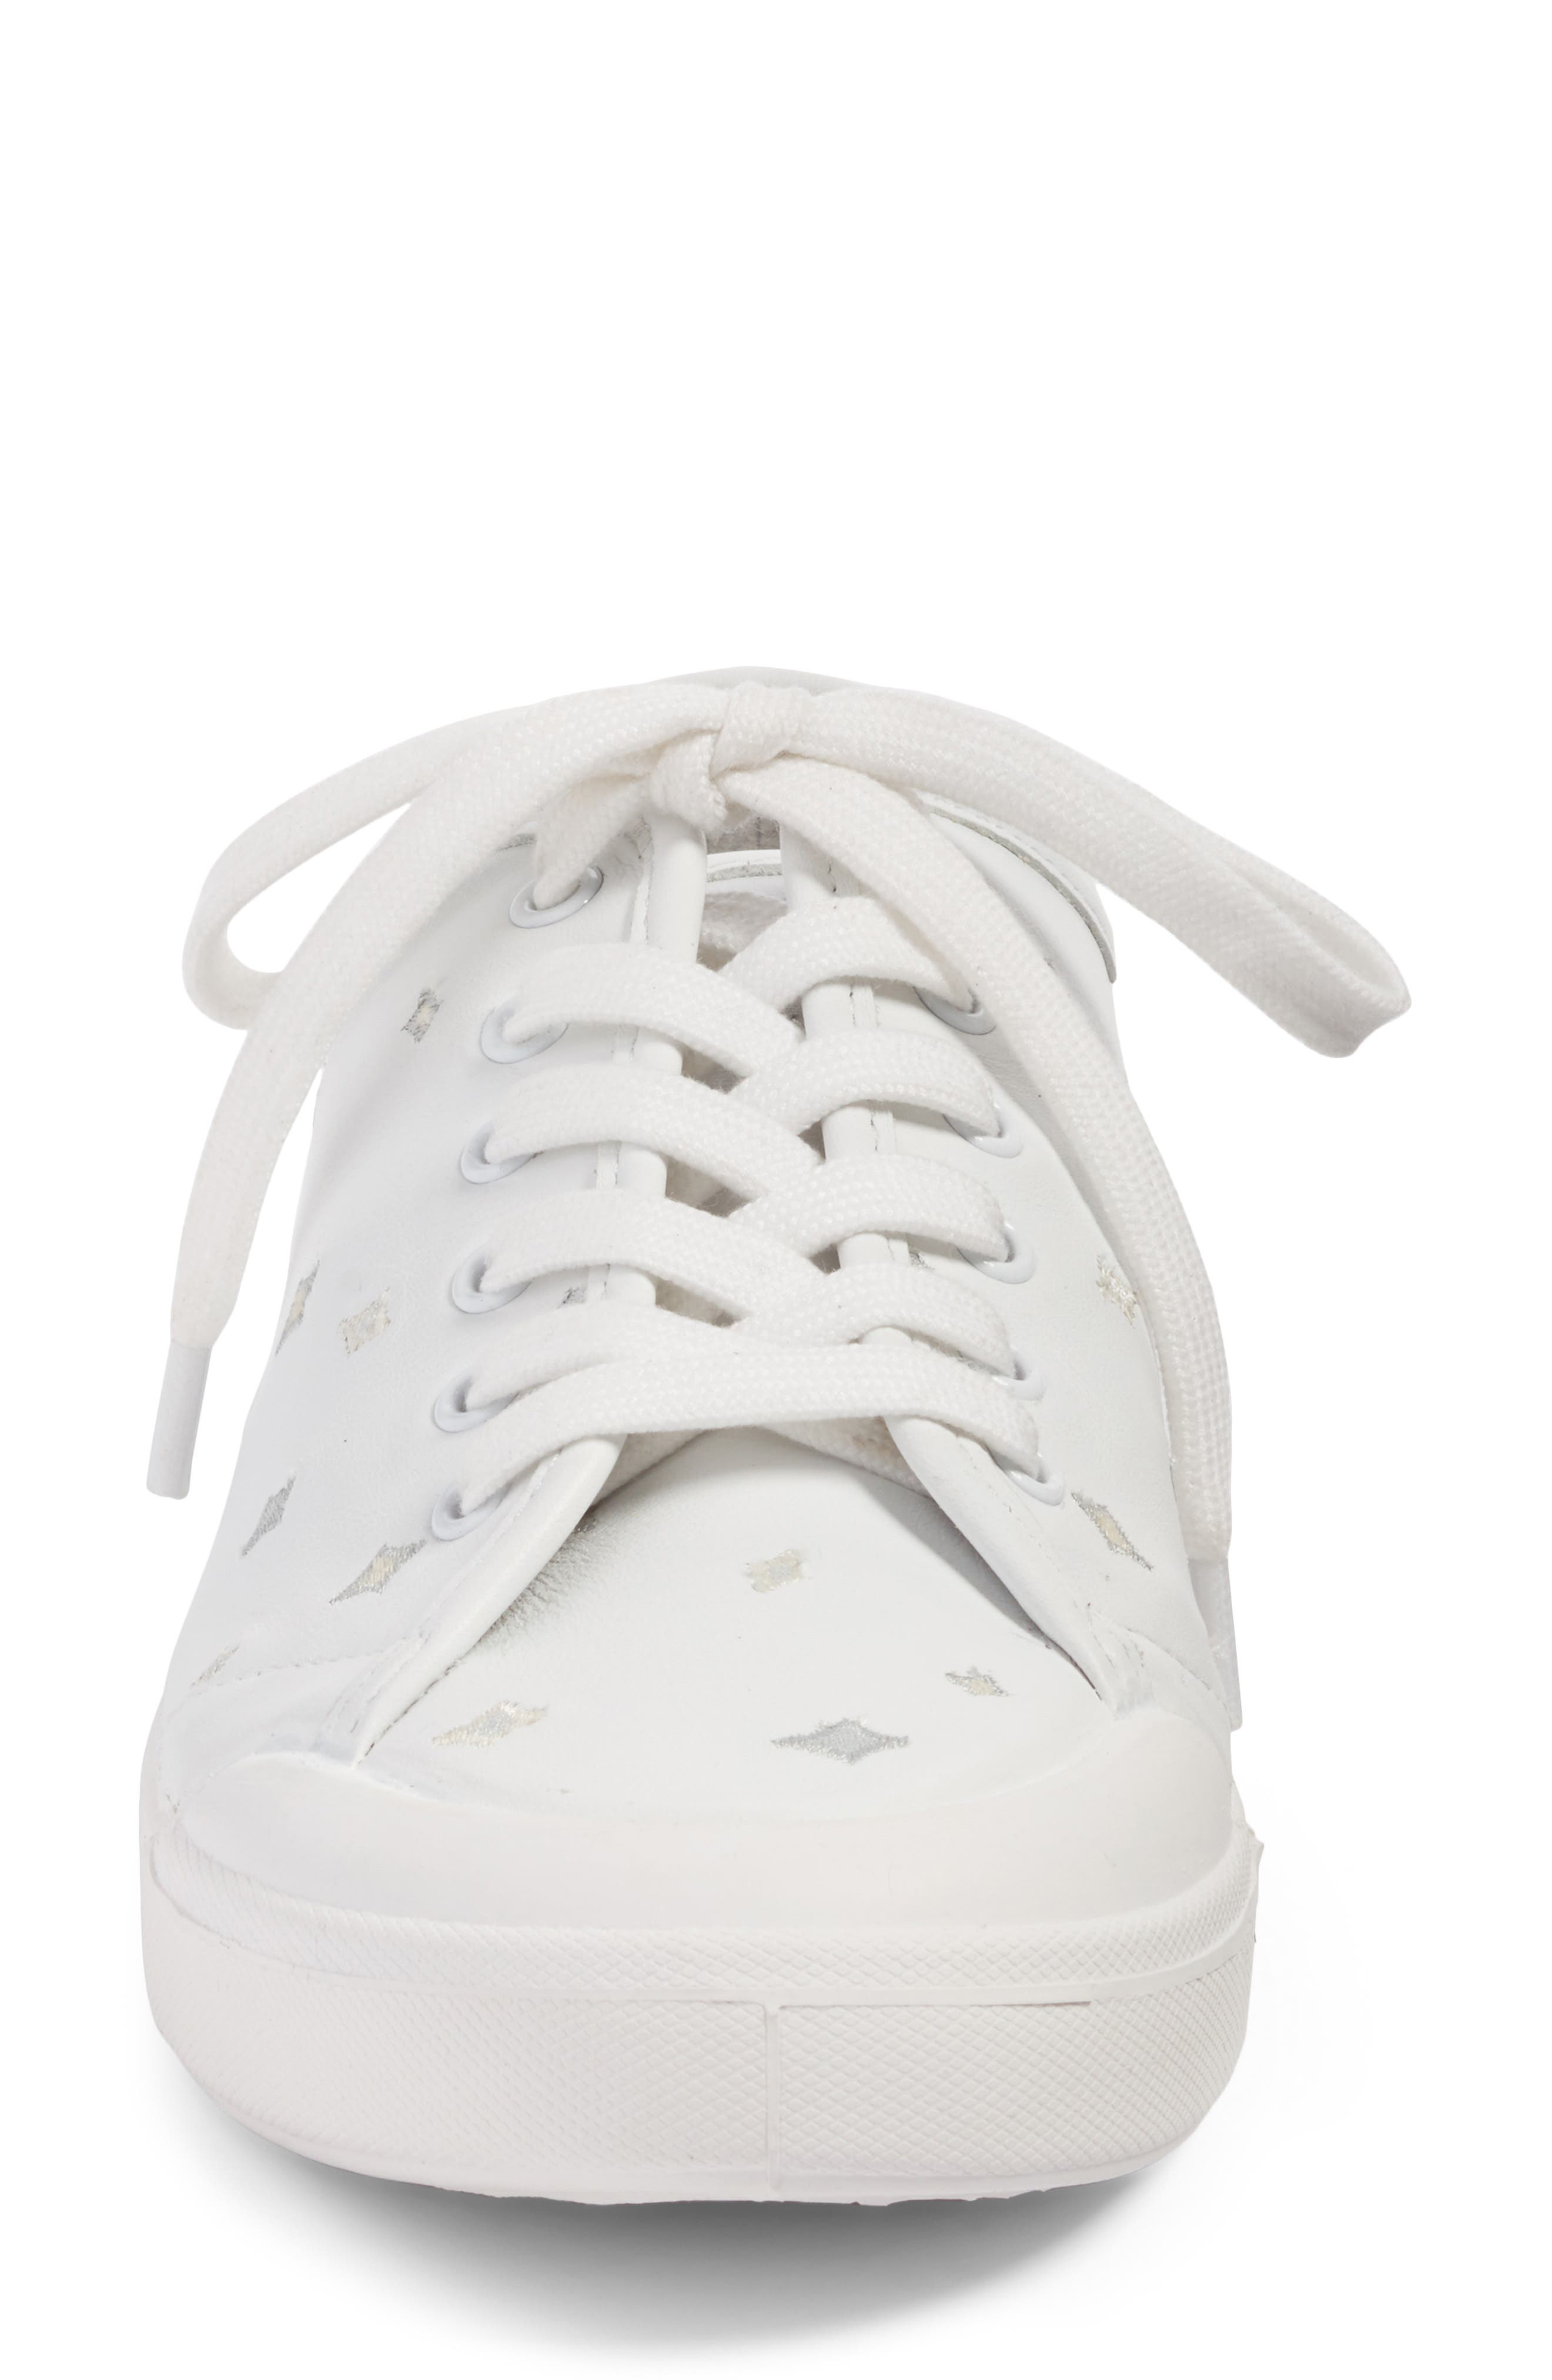 Embroidered Standard Issue Sneaker,                             Alternate thumbnail 4, color,                             White Leather Embroidery